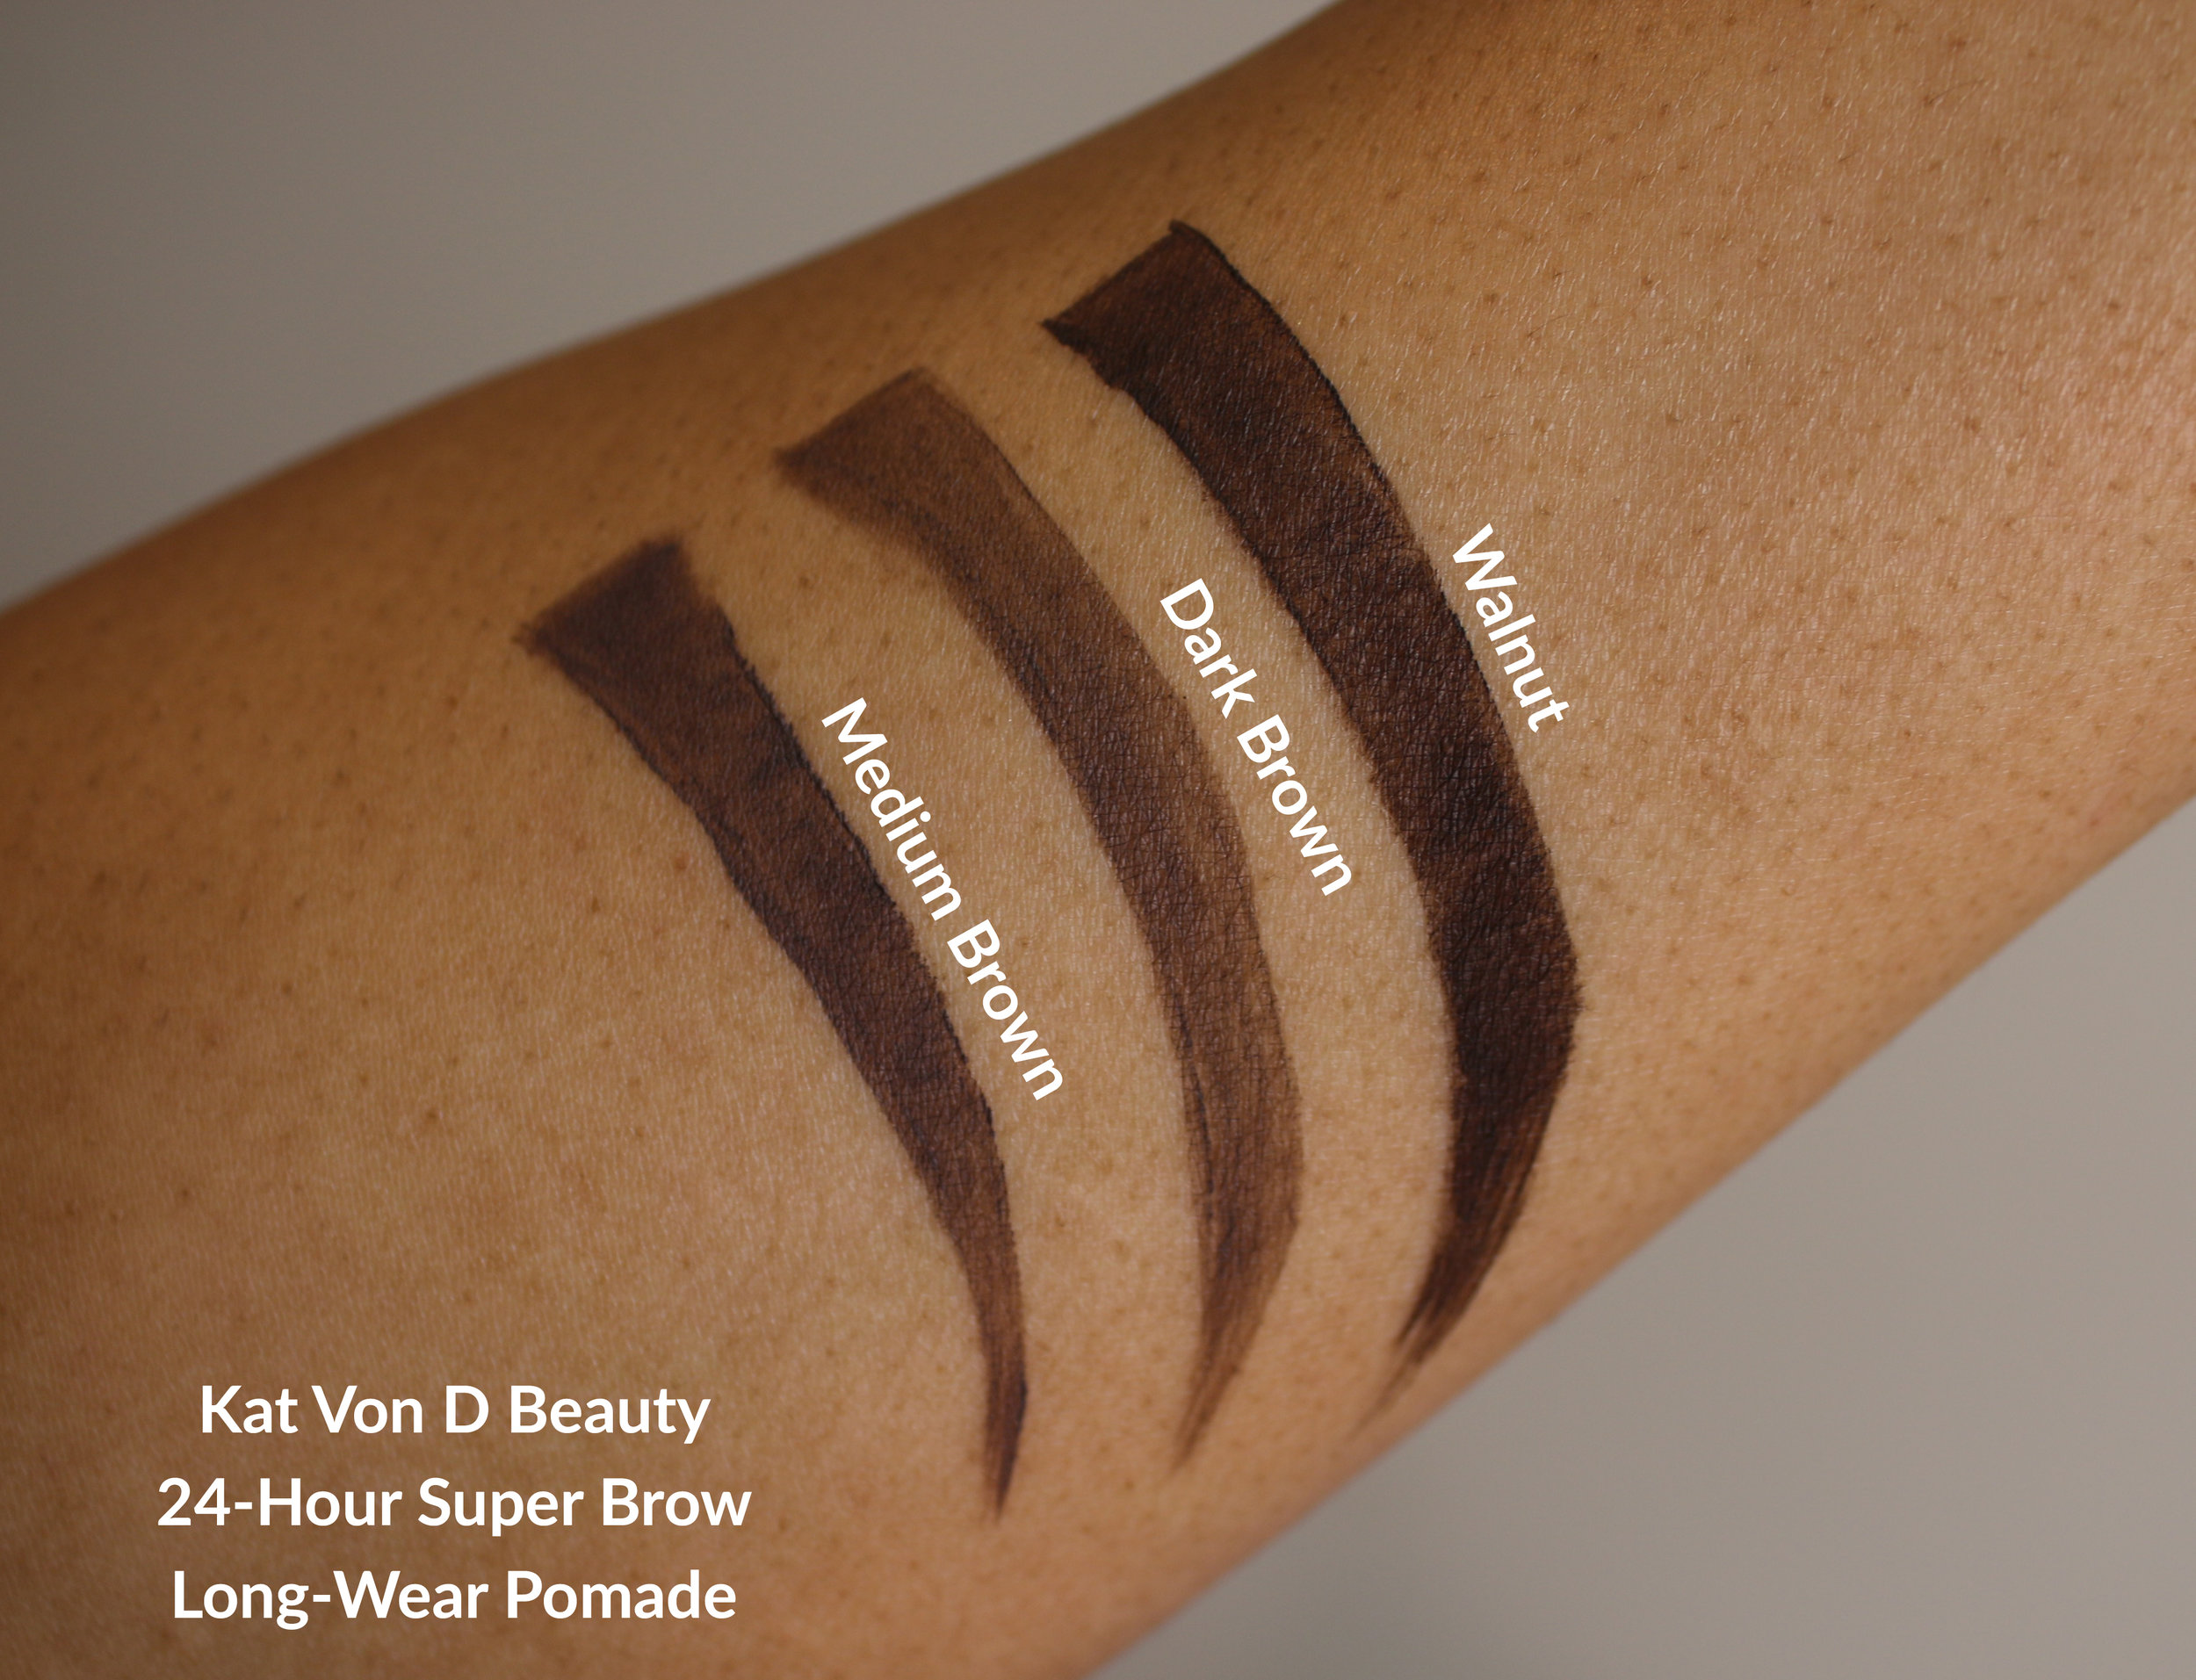 Kat Von D Beauty 24-Hour Super Brow Long-Wear Pomade Candy Coated Closets 3.jpg